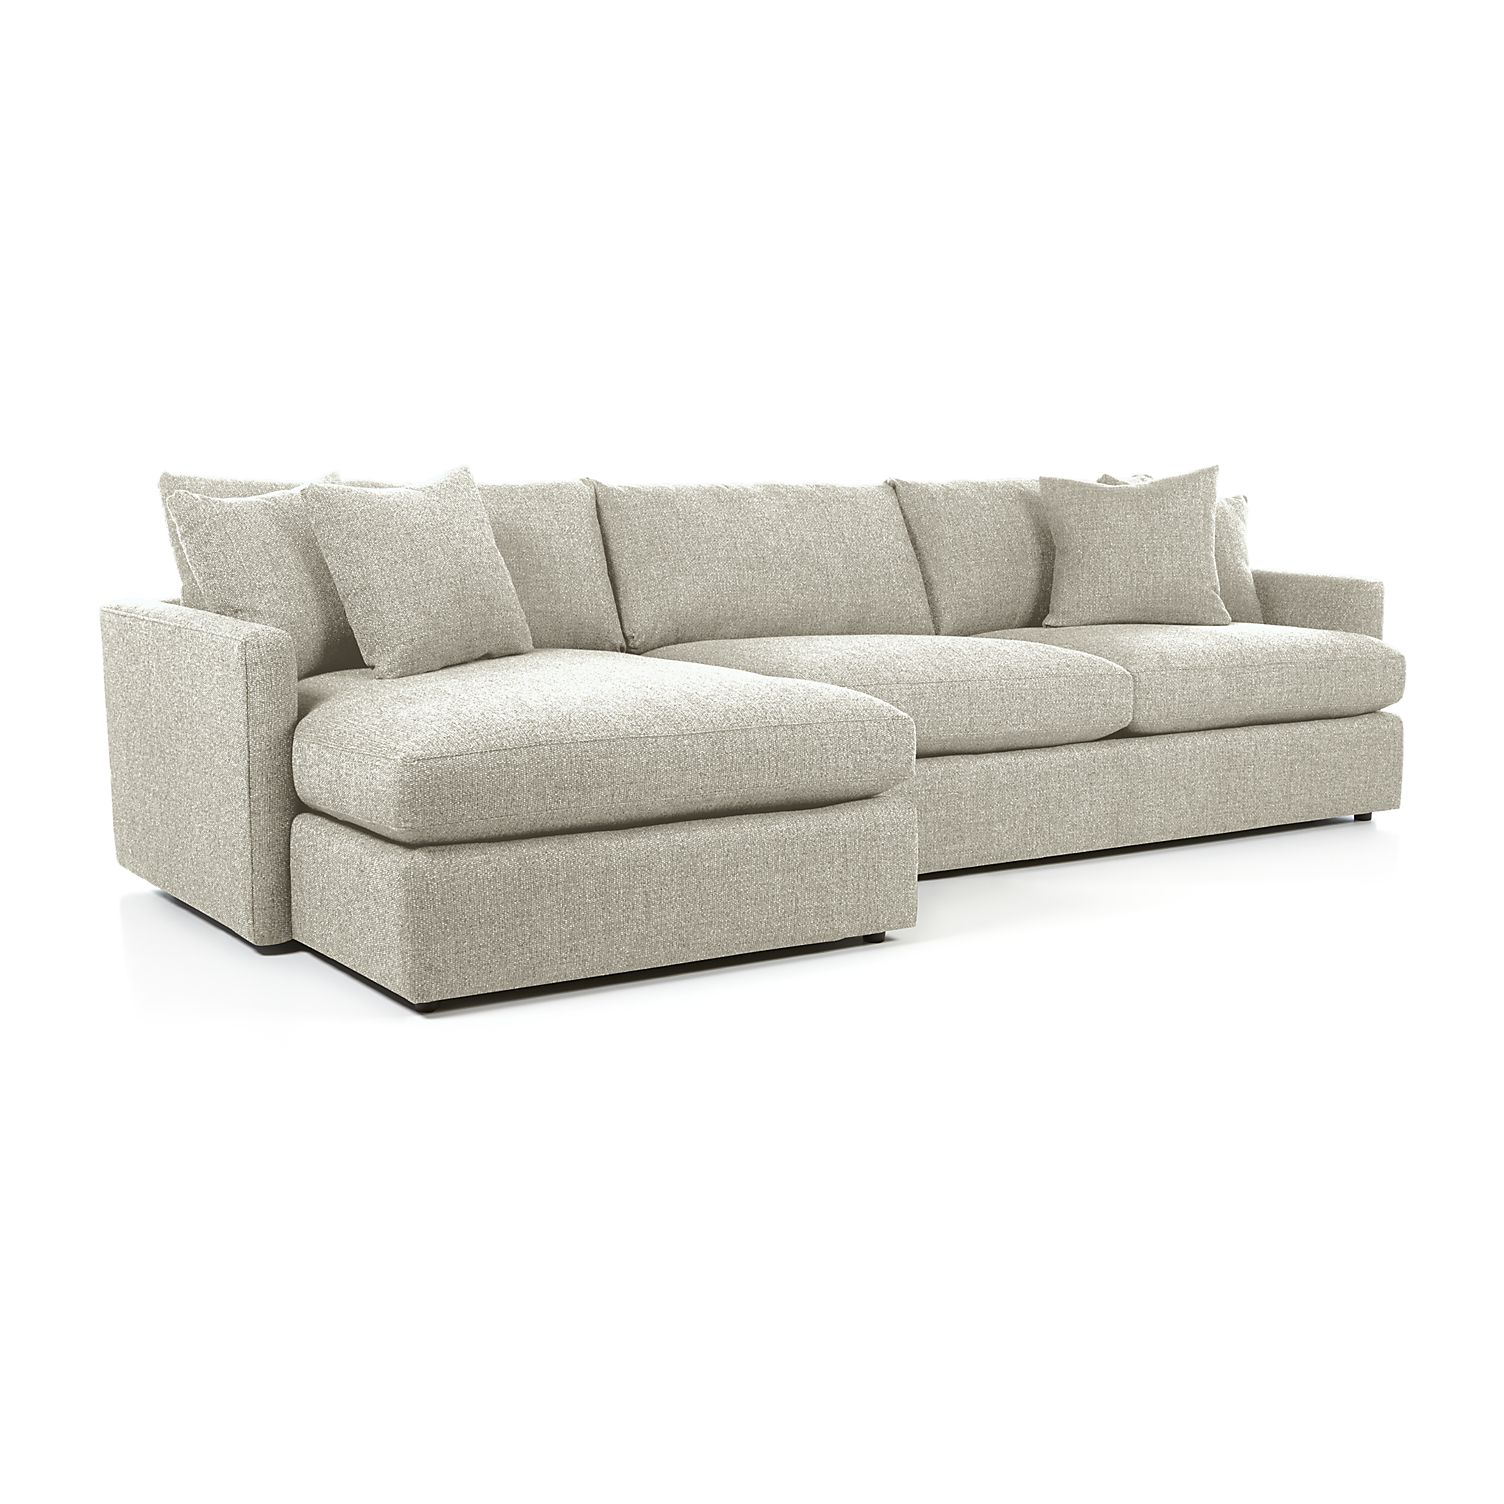 Lounge Ii 2 Piece Sectional Sofa